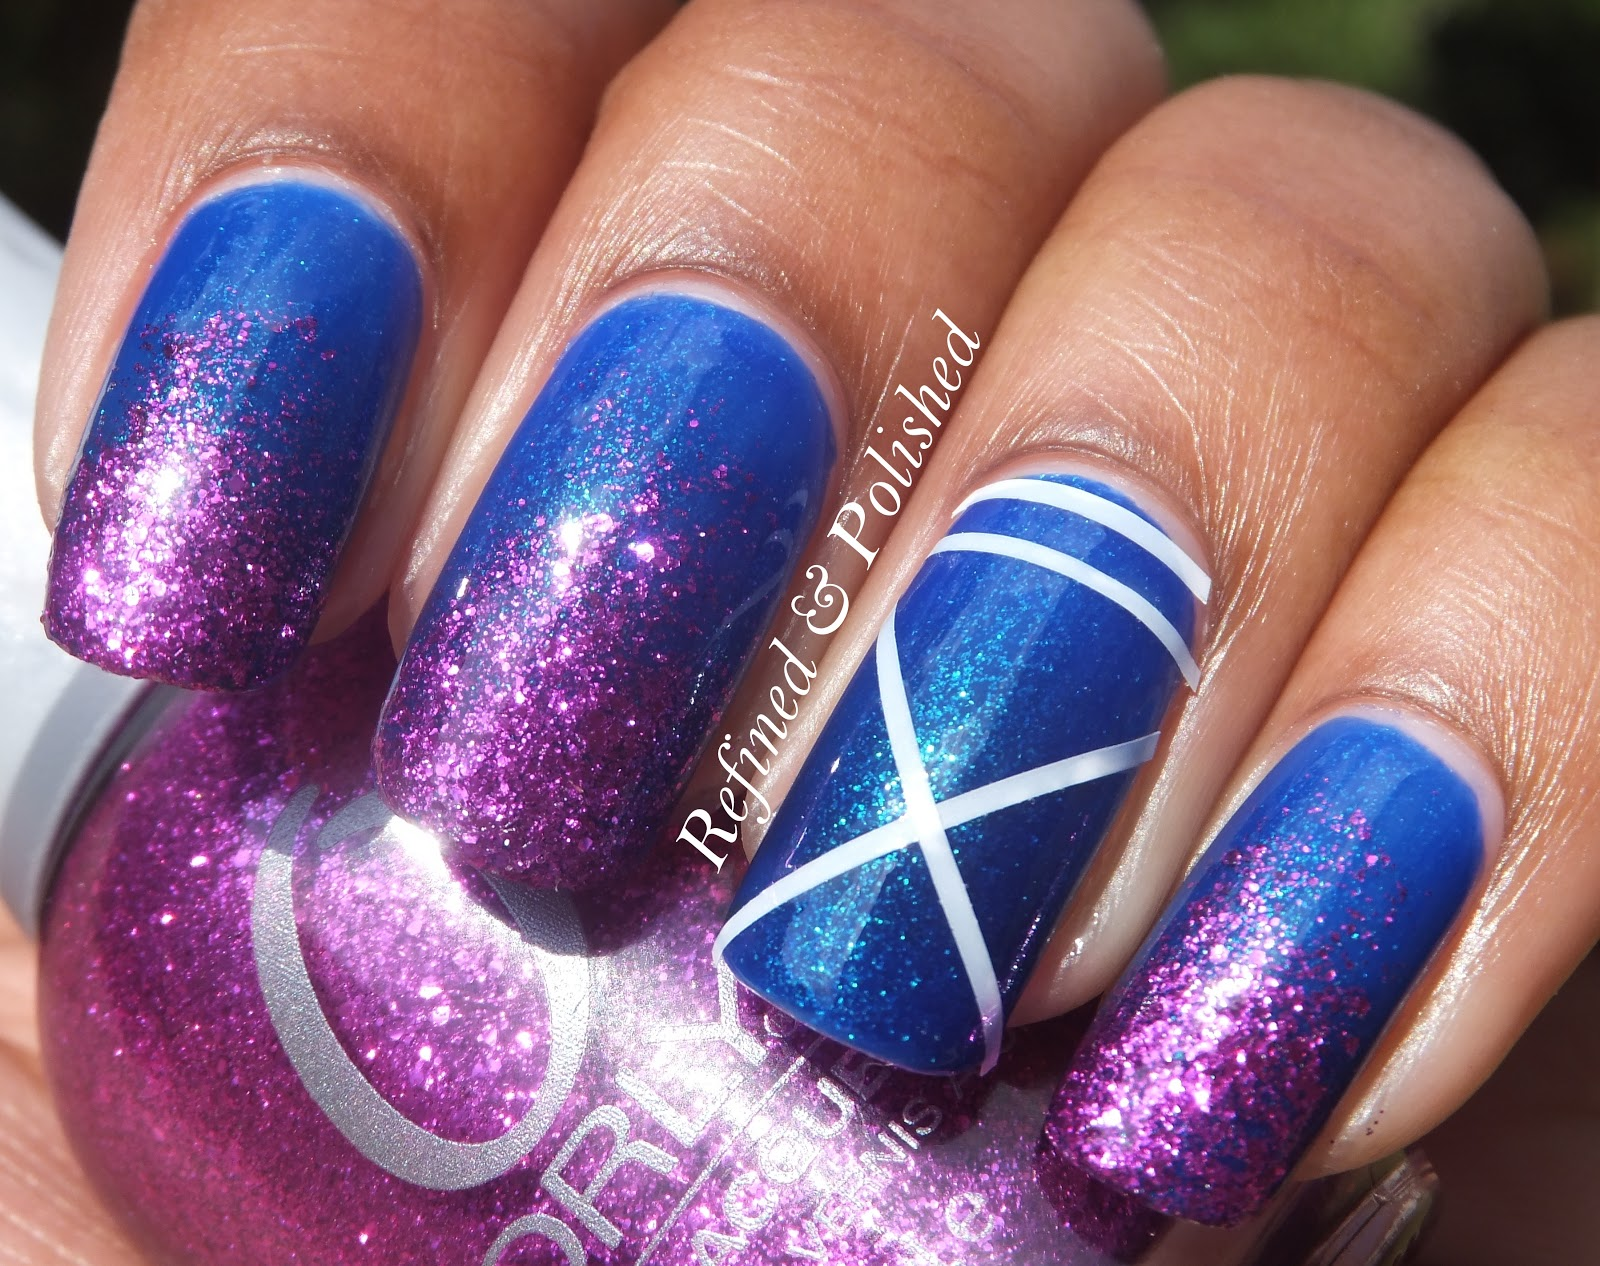 X Out Nail Art Project - Refined and Polished